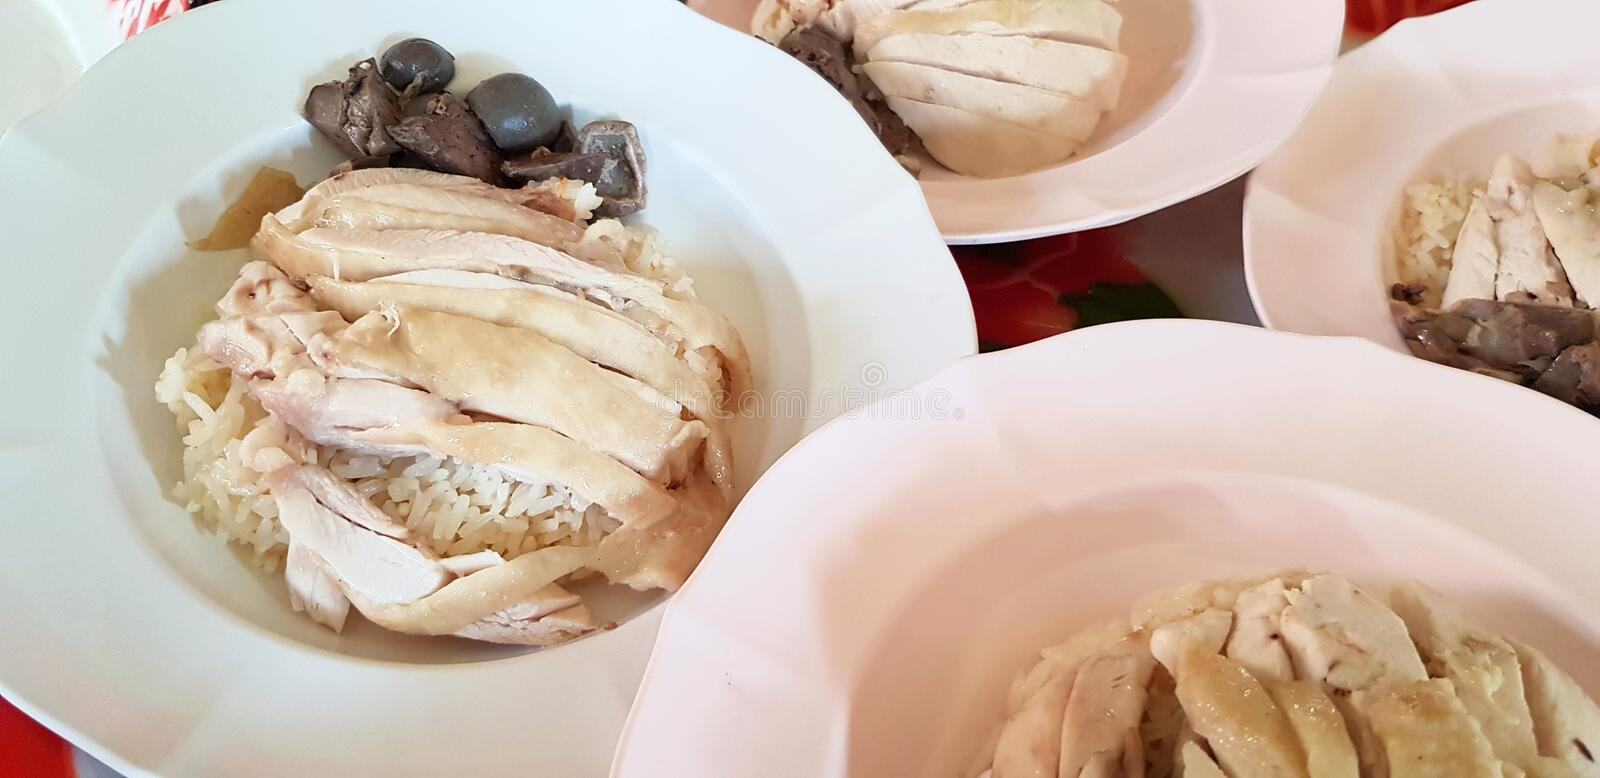 Hainanese chicken rice or steamed chicken with white rice on white plate for sale and serving customer royalty free stock image